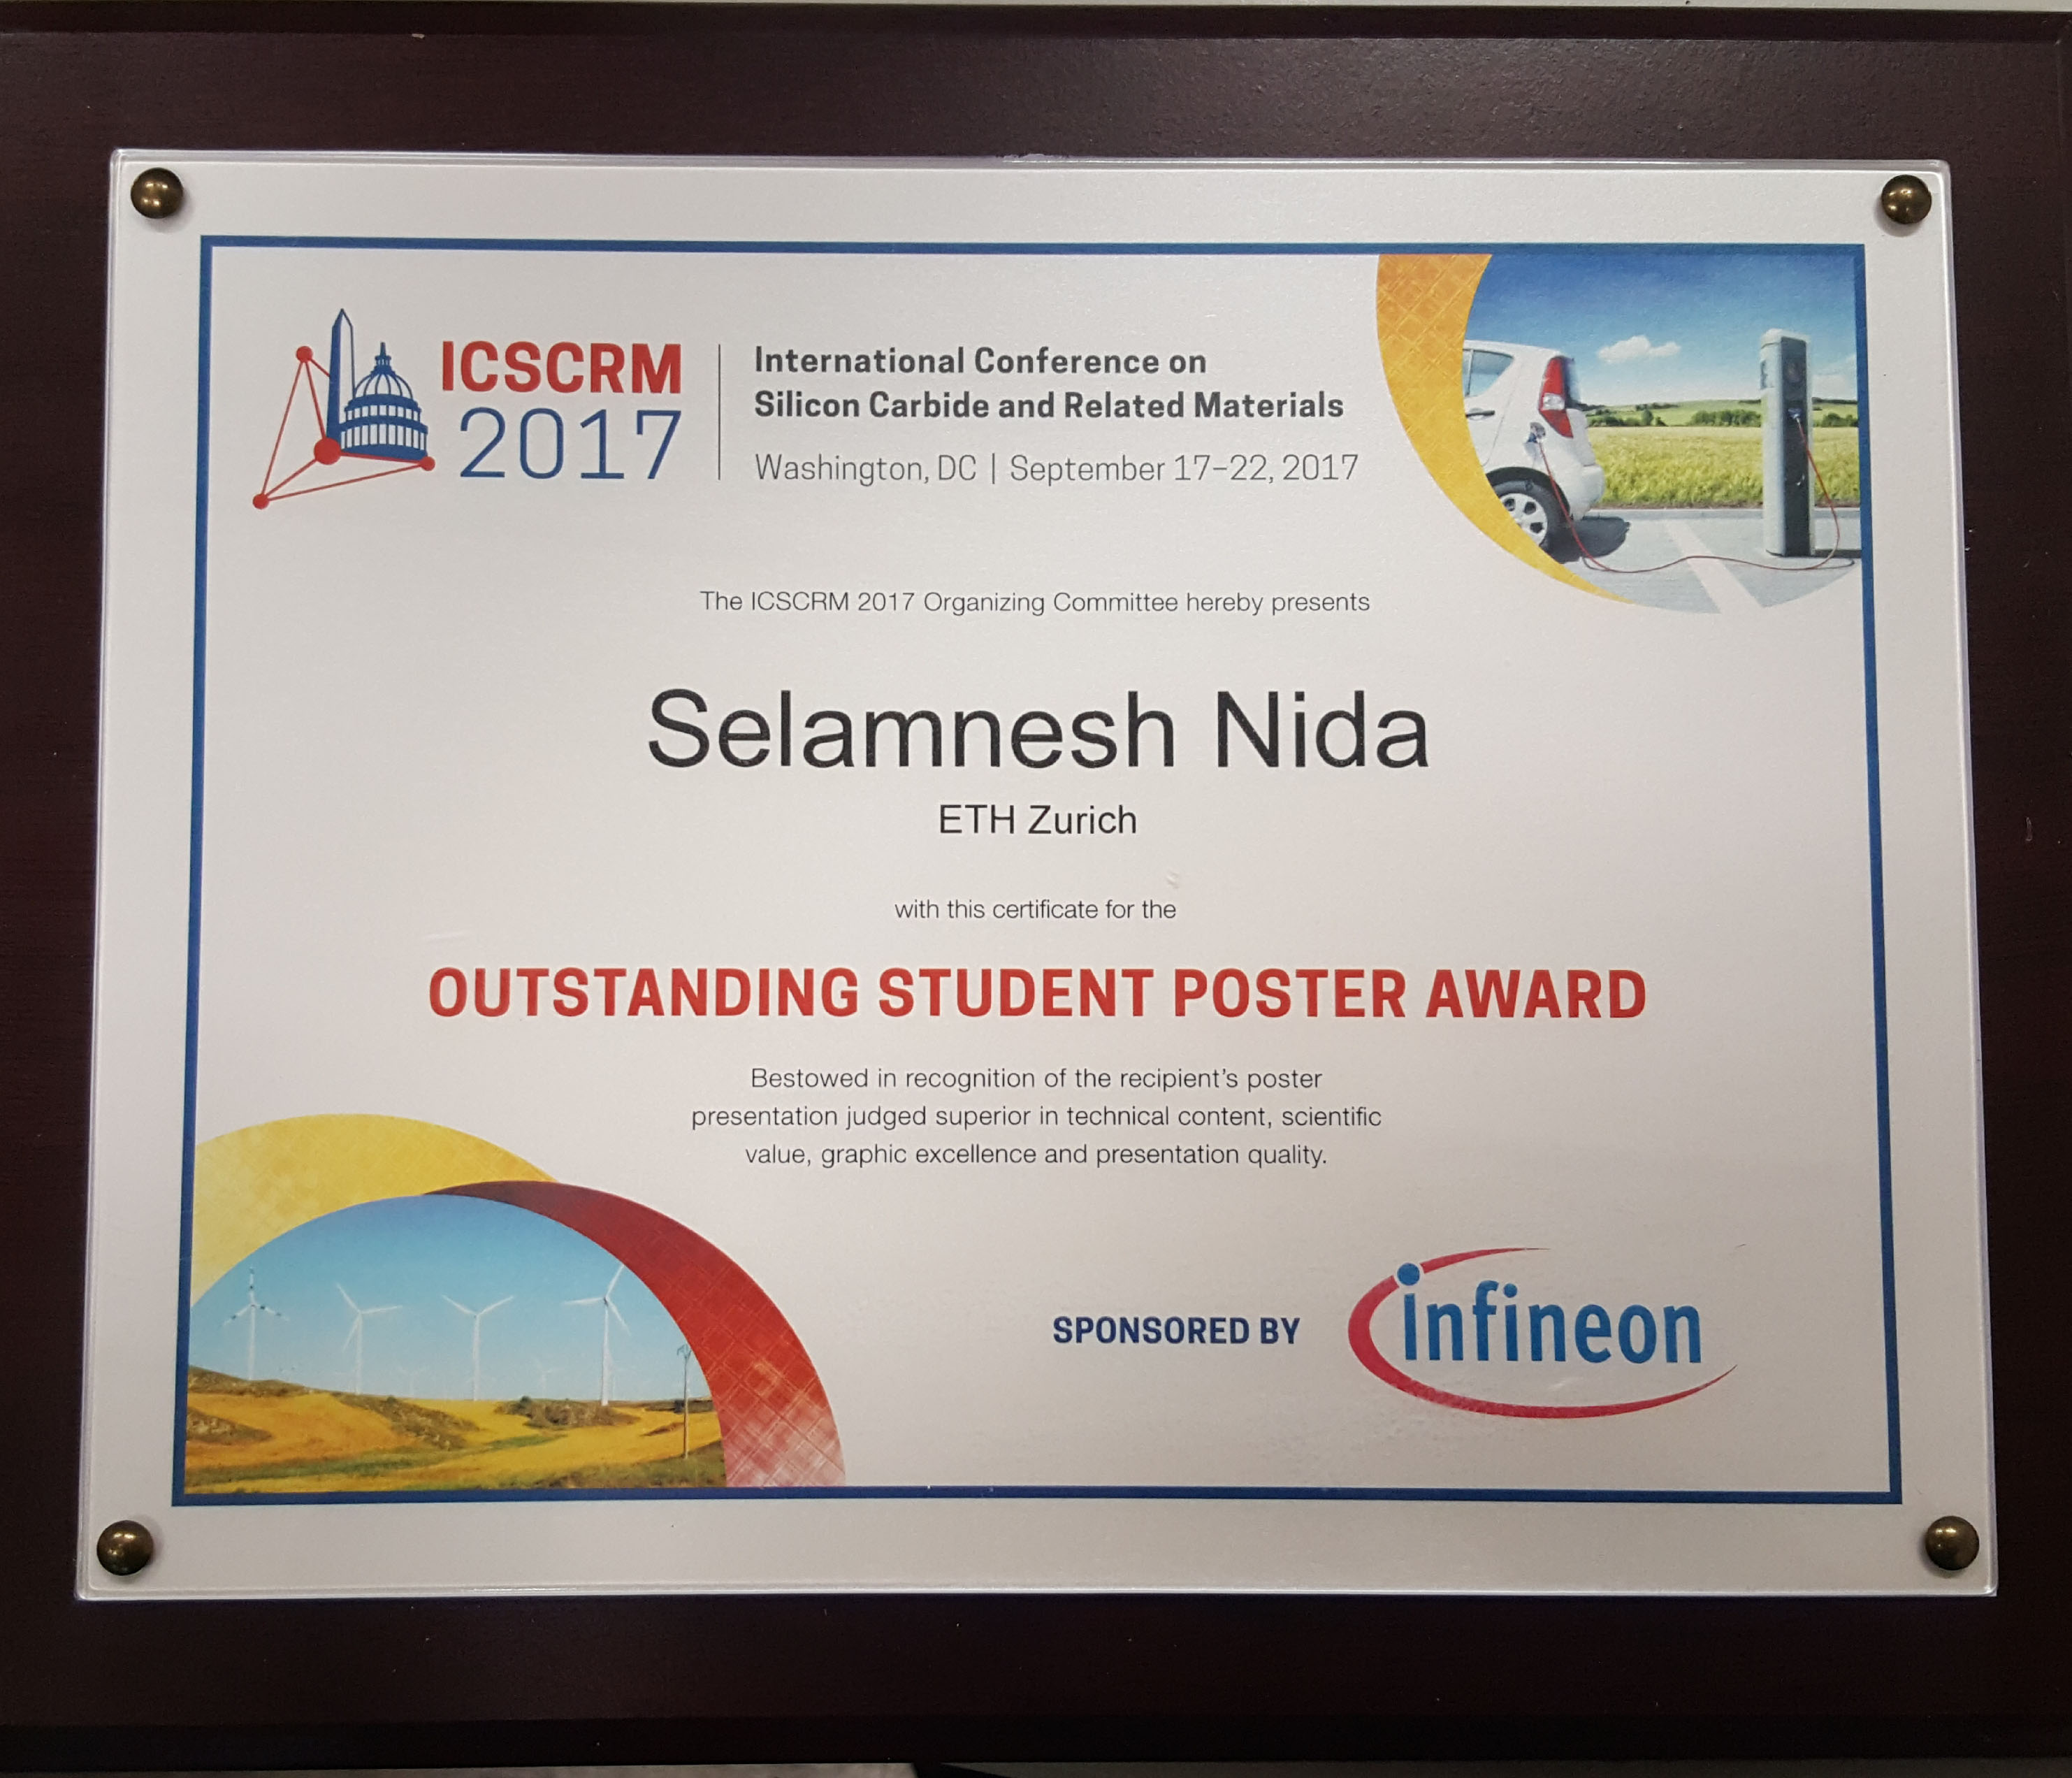 Icscrm 2017 poster award advanced power semiconductor laboratory we are happy to announce that the poster presentation of selamnesh nida phd student at the aps lab was awarded with the icscrm 2017 poster award toneelgroepblik Images